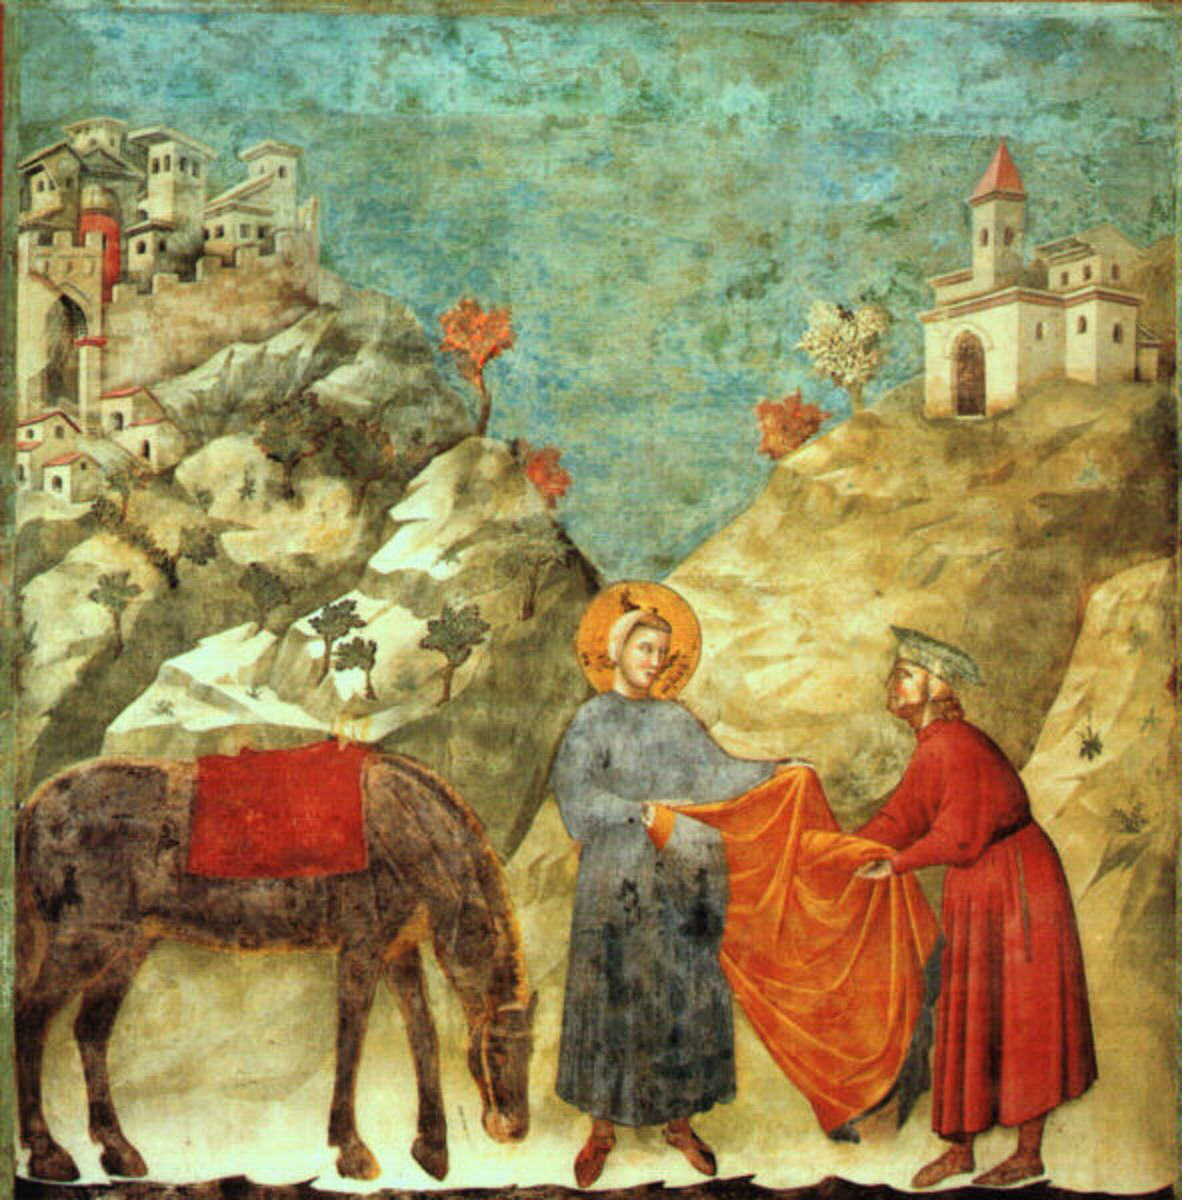 Giotto di Bondone, St Francis Giving his Mantle (a. 1300), Assisi Upper Church